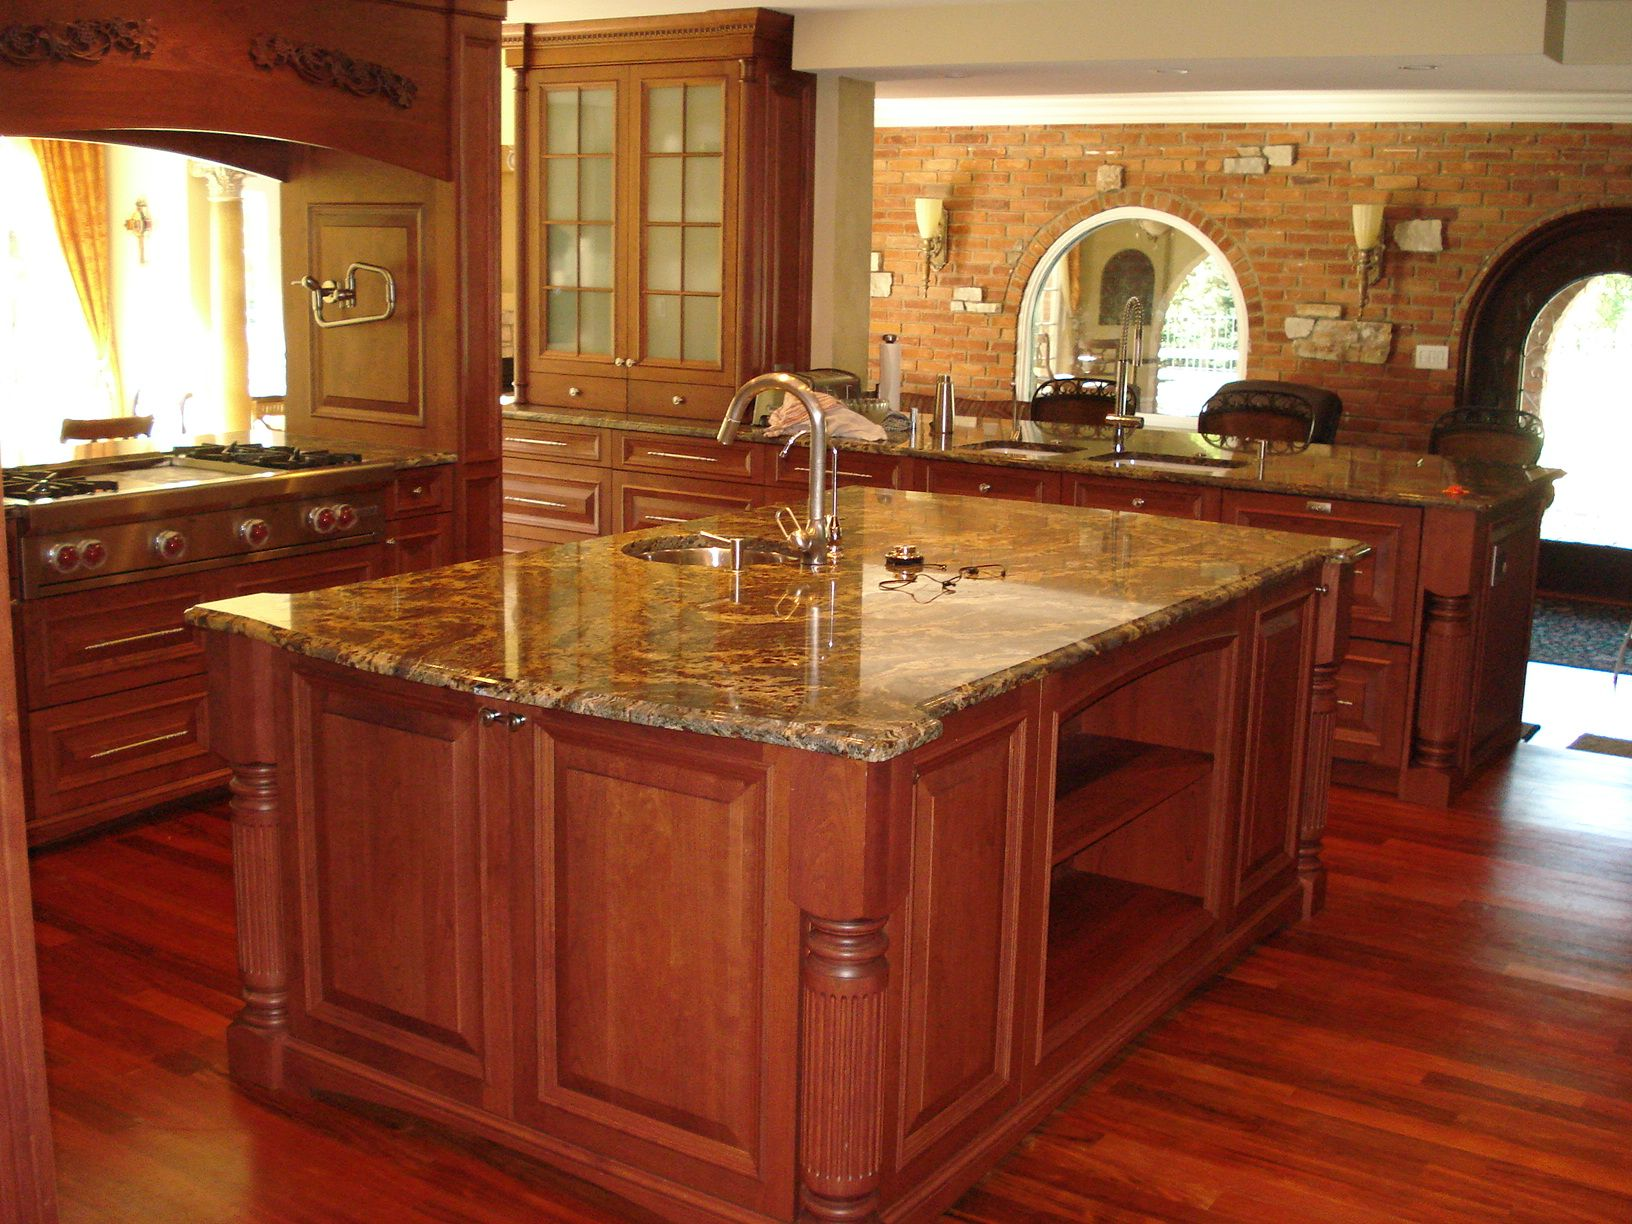 Affordable Granite Offers Kitchen U0026 Bathroom Countertop Installation For  Charleston, SC. If Youu0027re Interested In Granite Countertops, Give Us A Call.